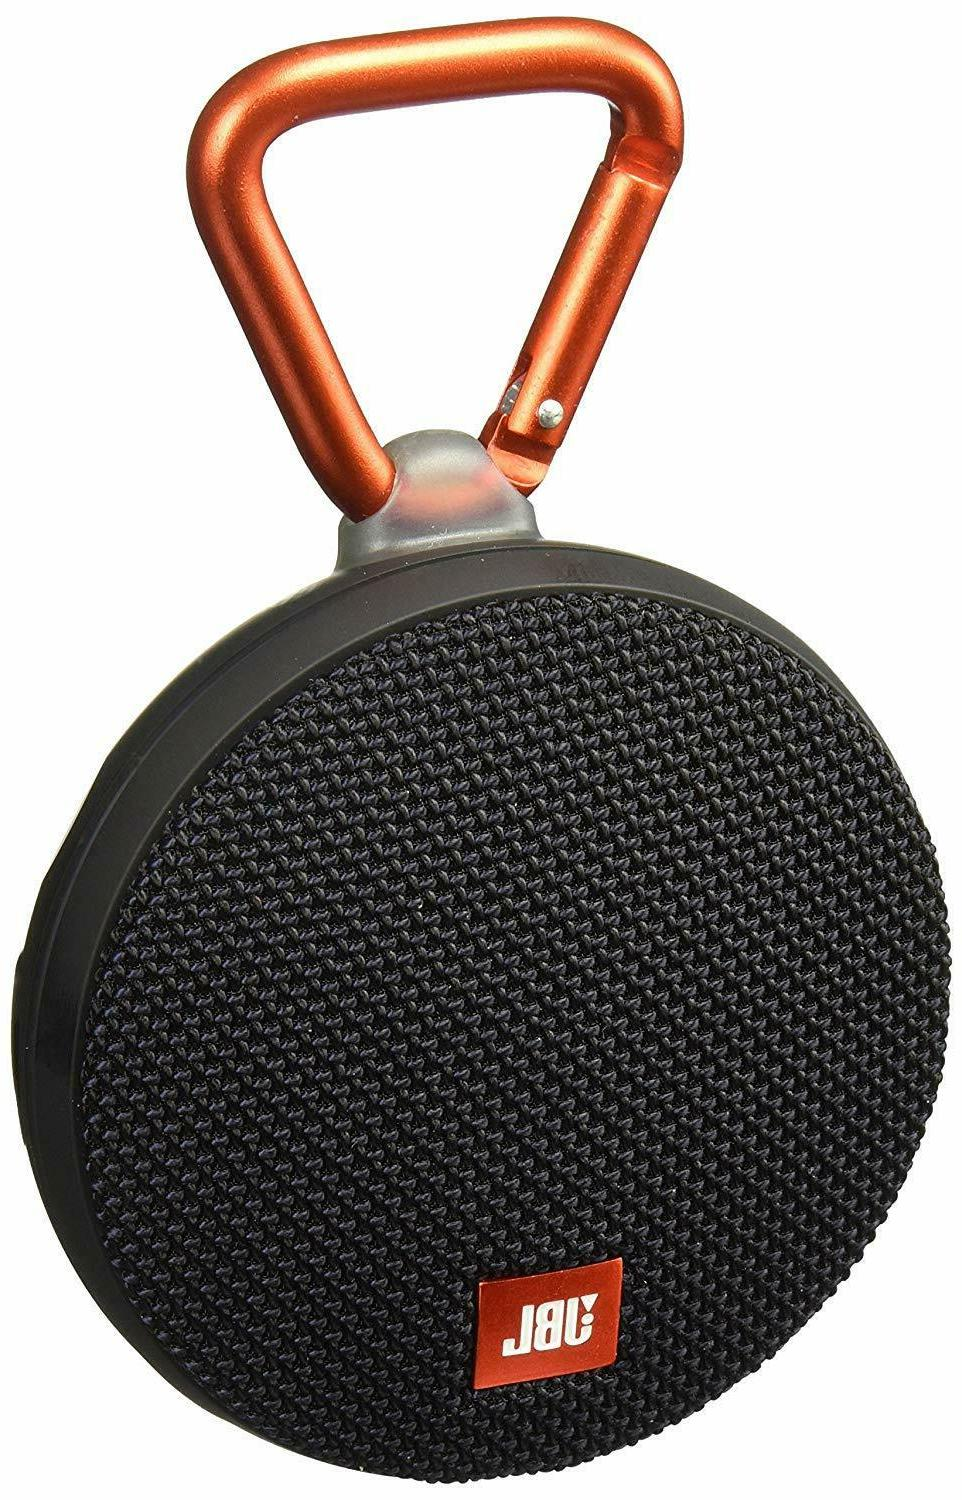 clip 2 camouflage portable bluetooth speaker